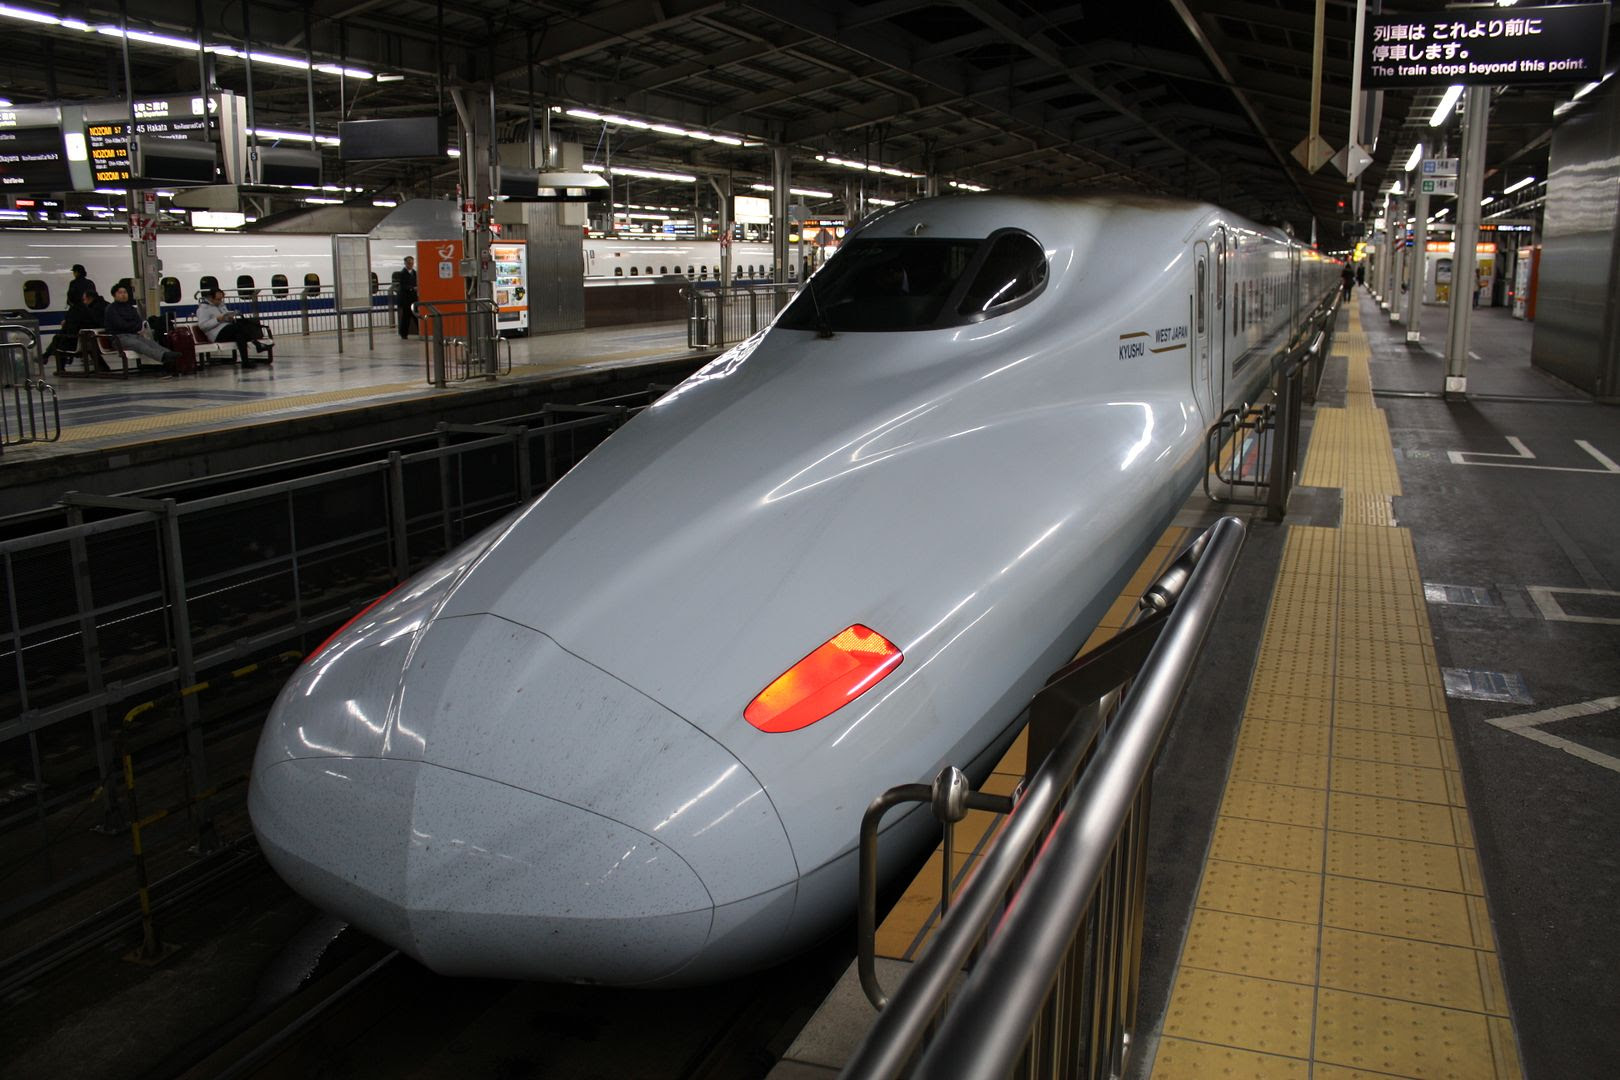 High-speed Rail Train in Japan photo 2013-12-24041929_zps943460d6.jpg